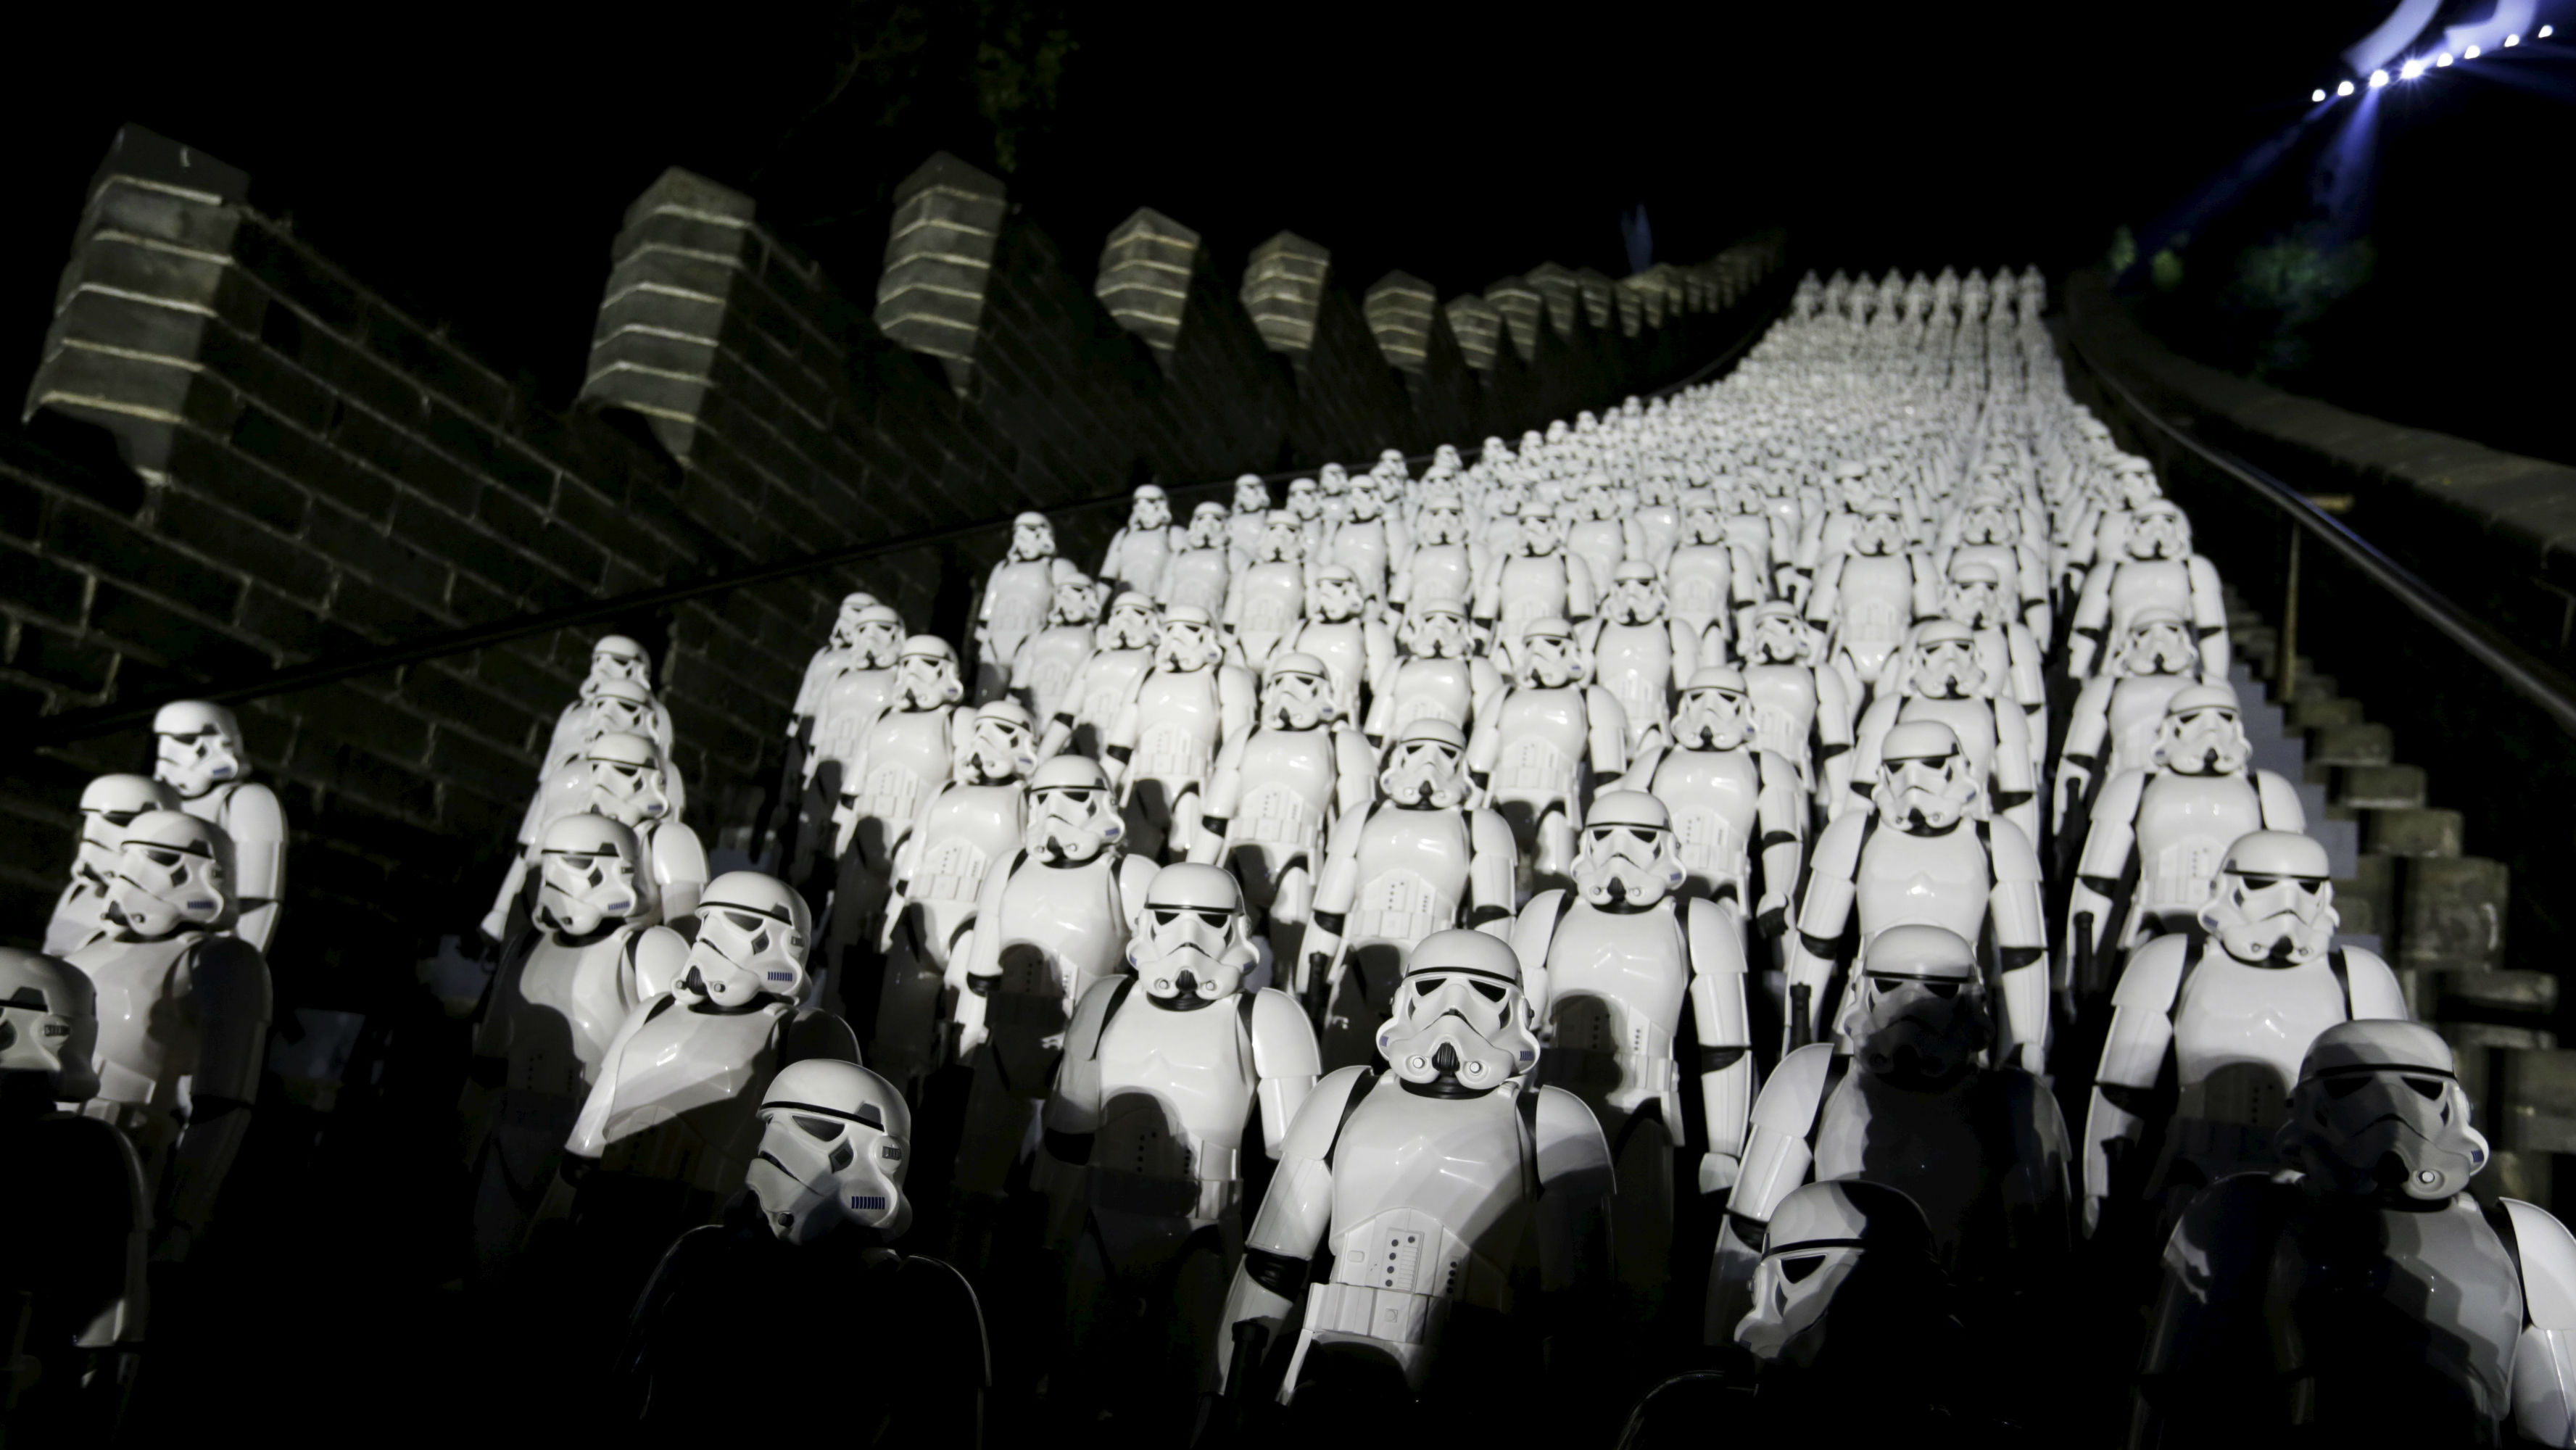 """Five hundred replicas of the Stormtroopers characters from """"Star Wars"""" are seen on the steps at the Juyongguan section of the Great Wall of China during a promotional event for """"Star Wars: The Force Awakens"""" film, on the outskirts of Beijing, China, October 20, 2015. REUTERS/Jason Lee"""